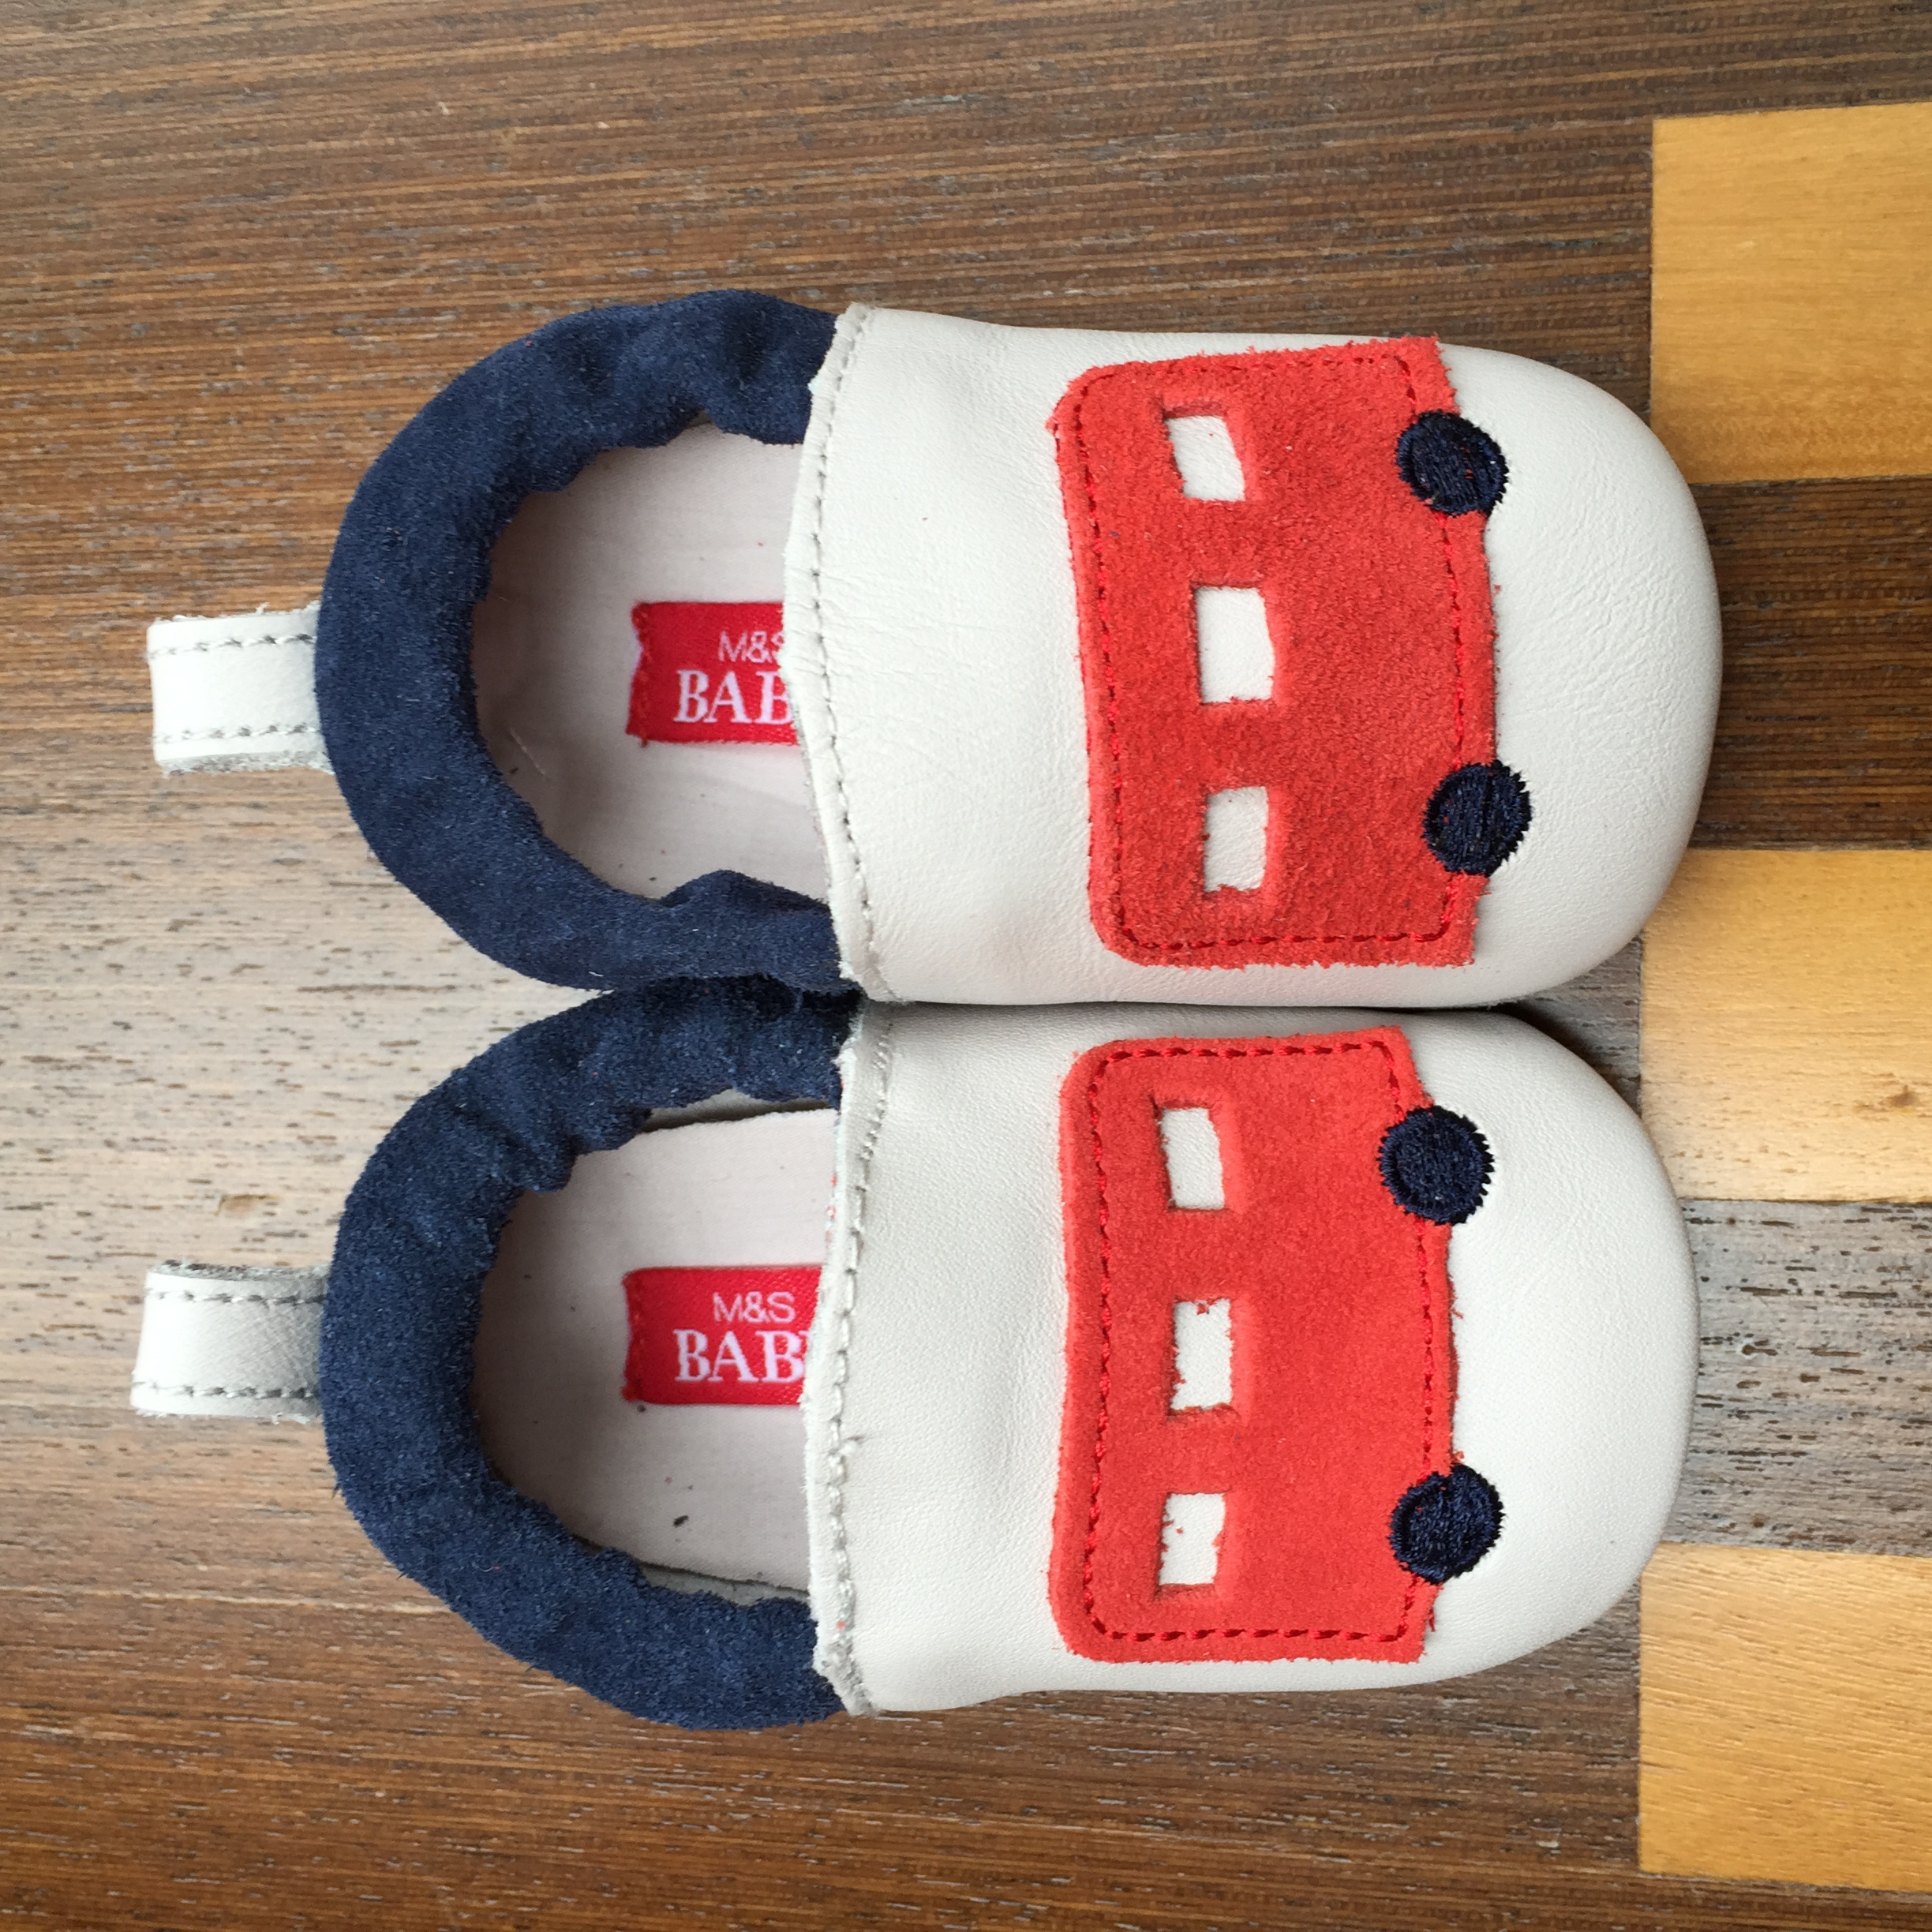 Baby comfy shoes